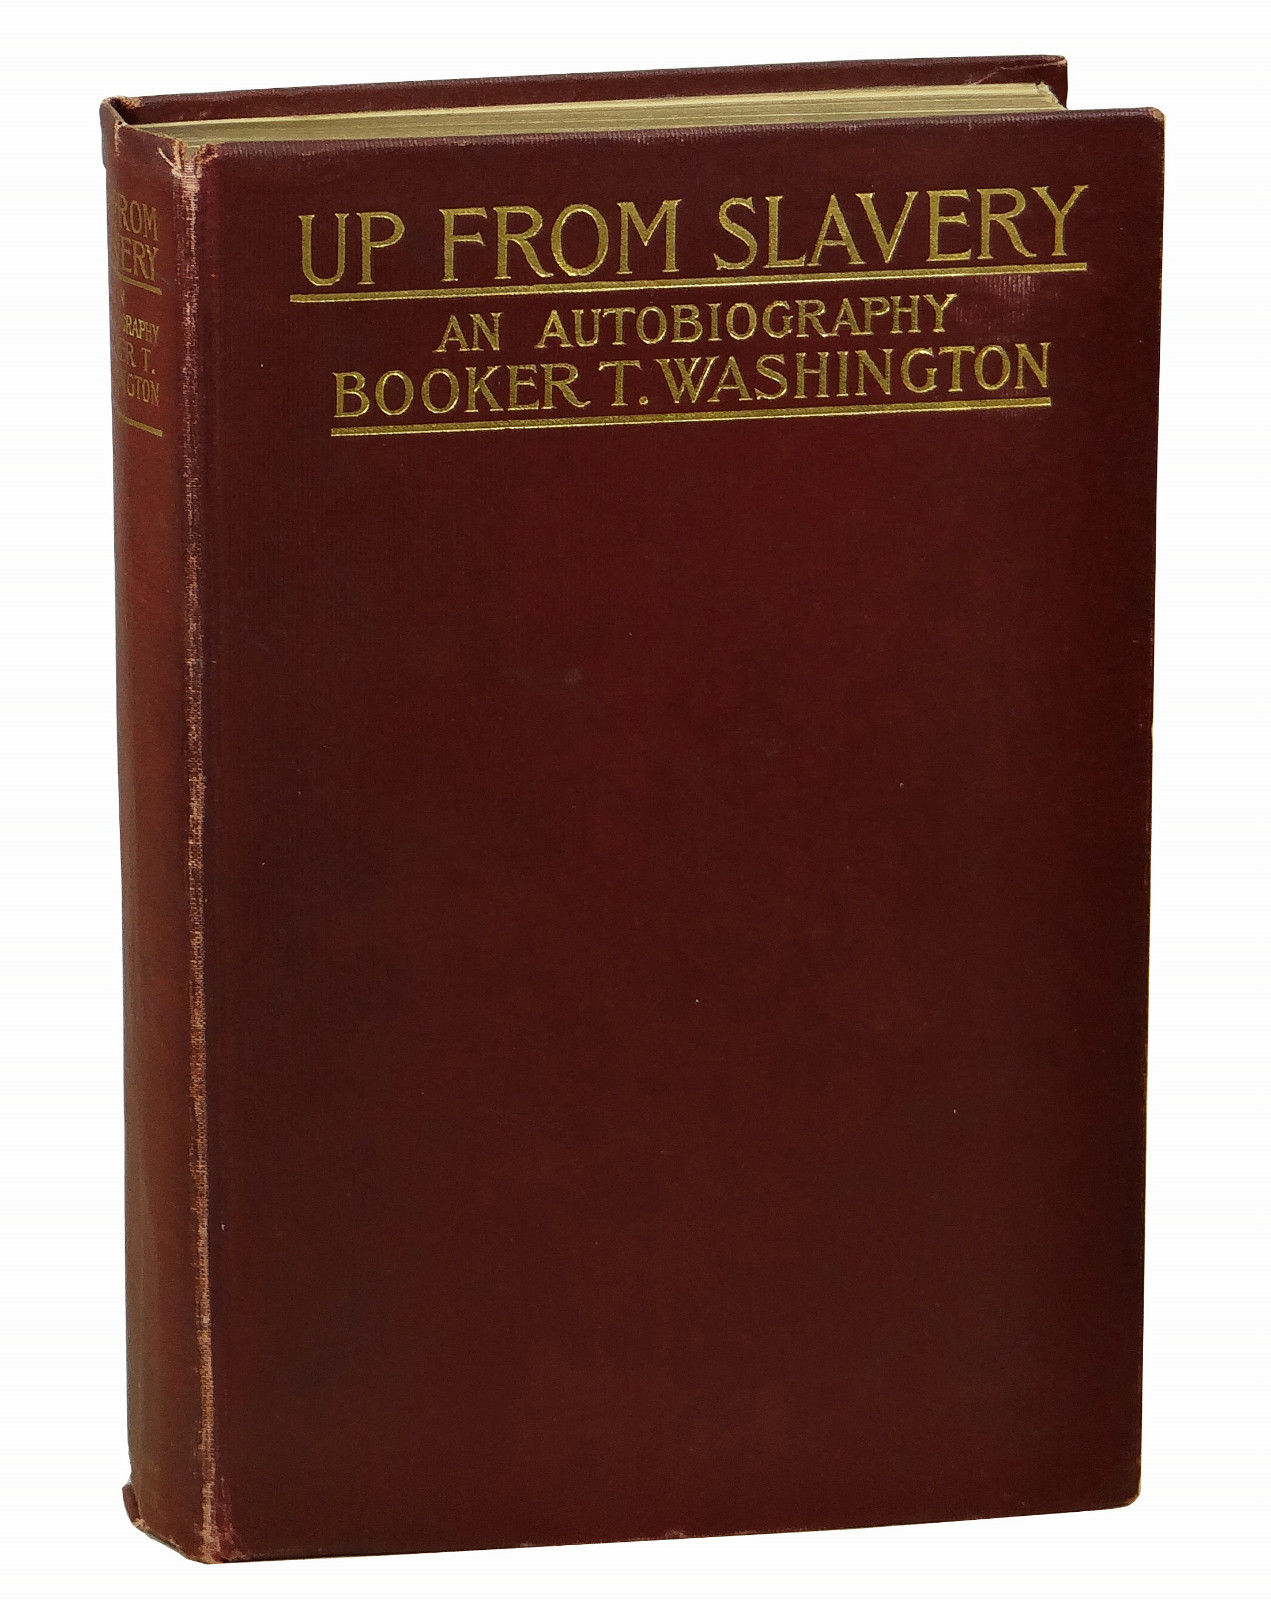 booker t washington essay booker t washington and the promise of  up from slavery an autobiography booker t washington first booker t washington up